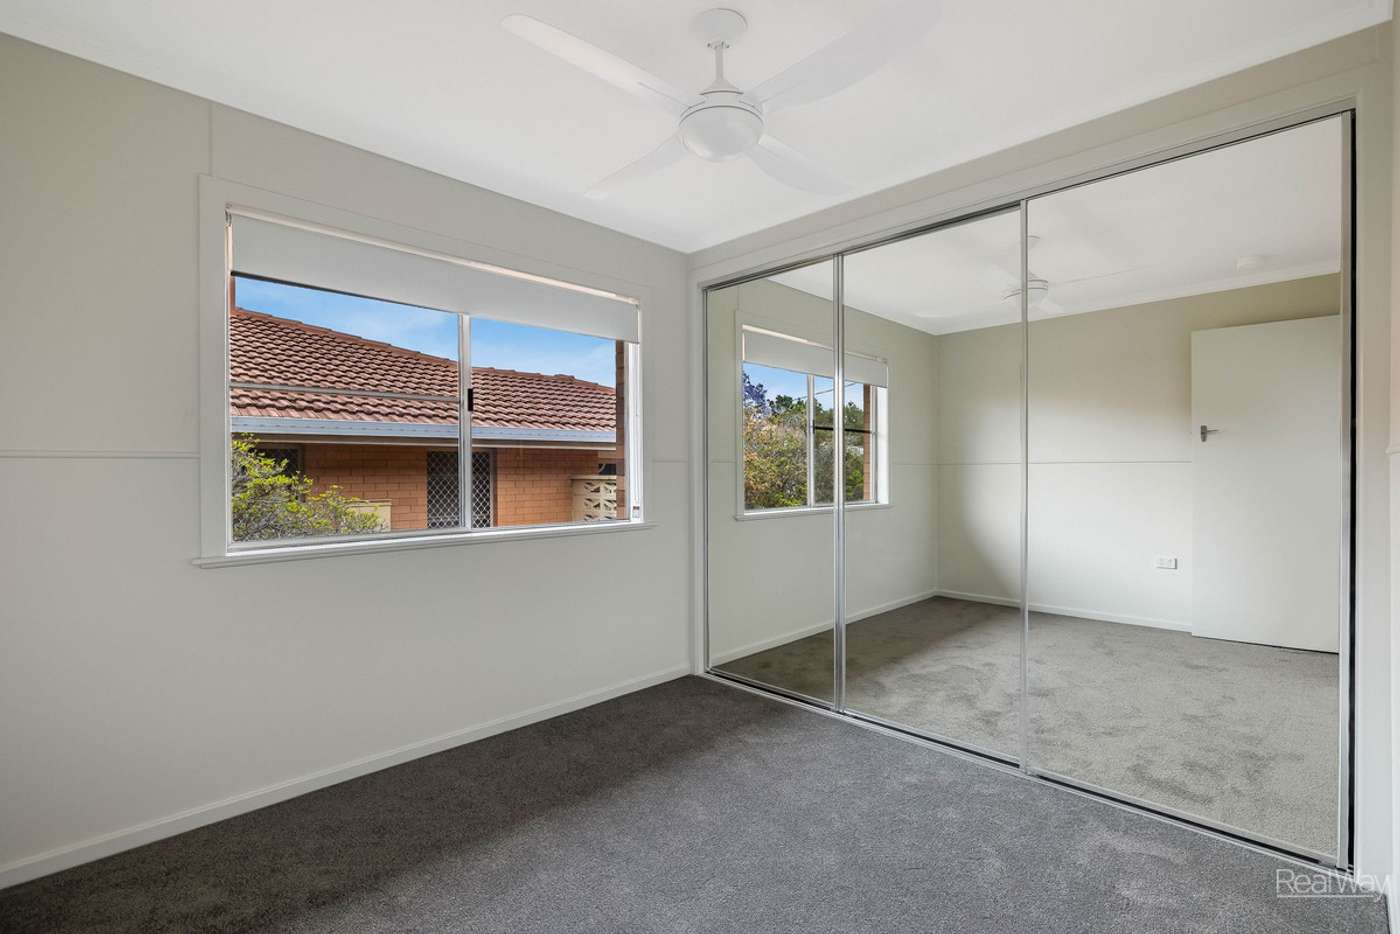 Seventh view of Homely house listing, 53 Rowbotham Street, Rangeville QLD 4350